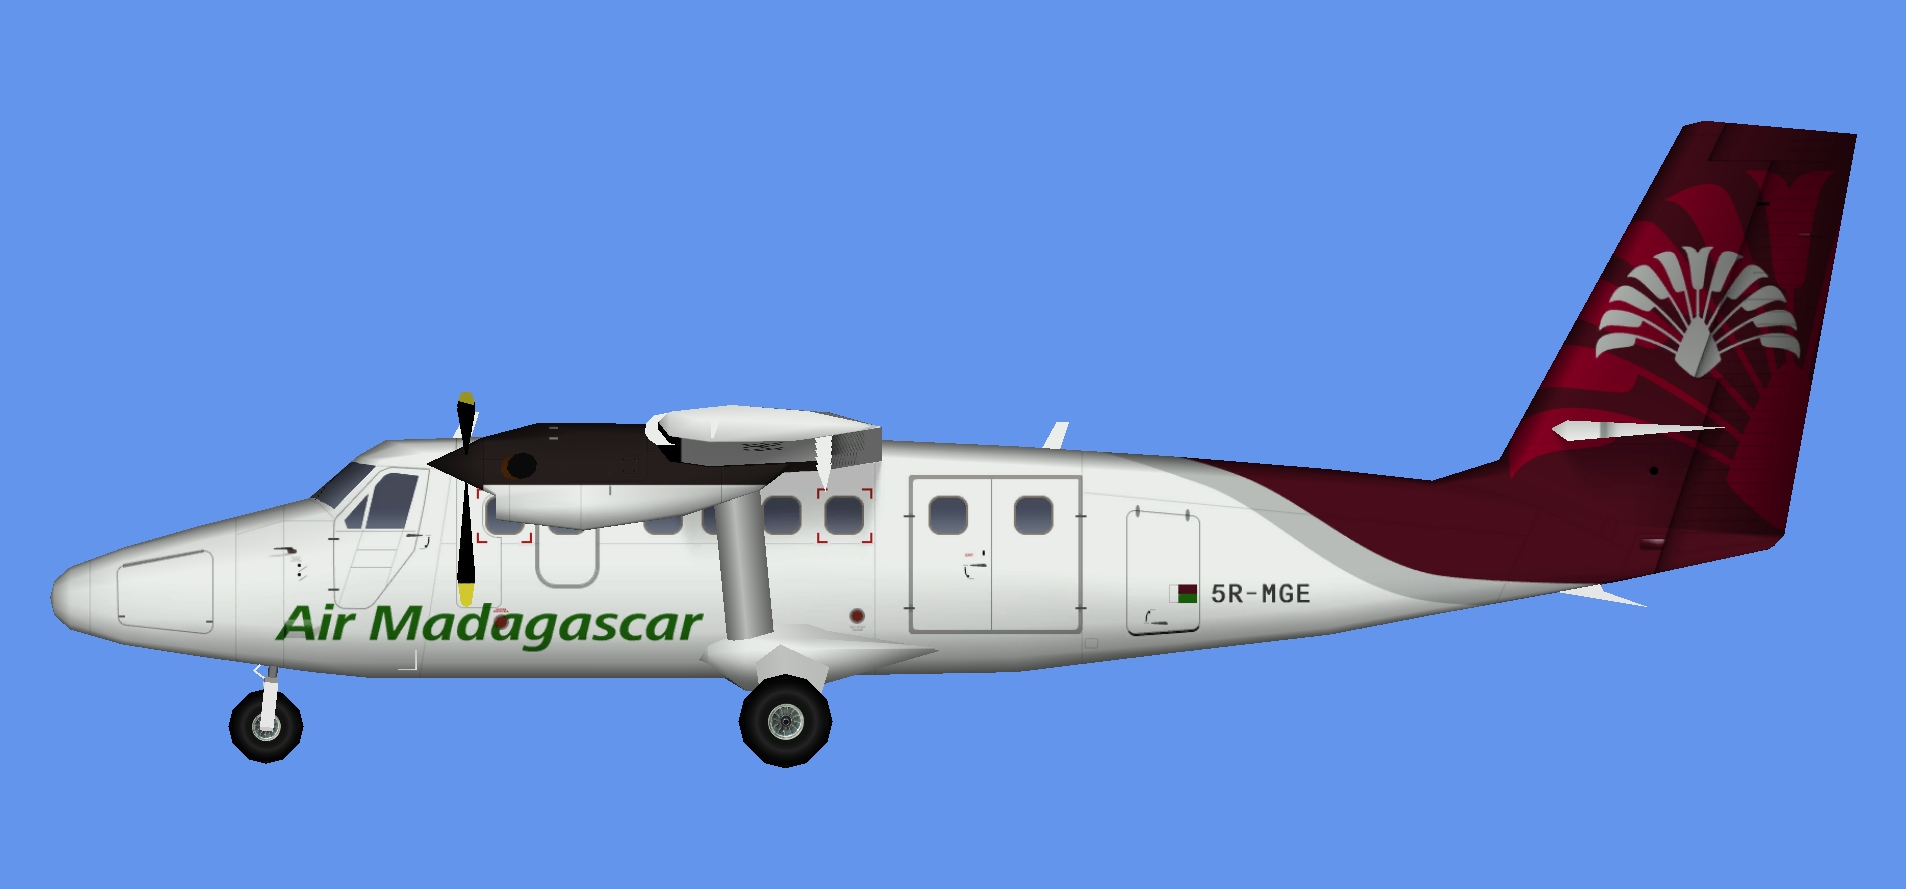 Air Madagascar DHC-6 300